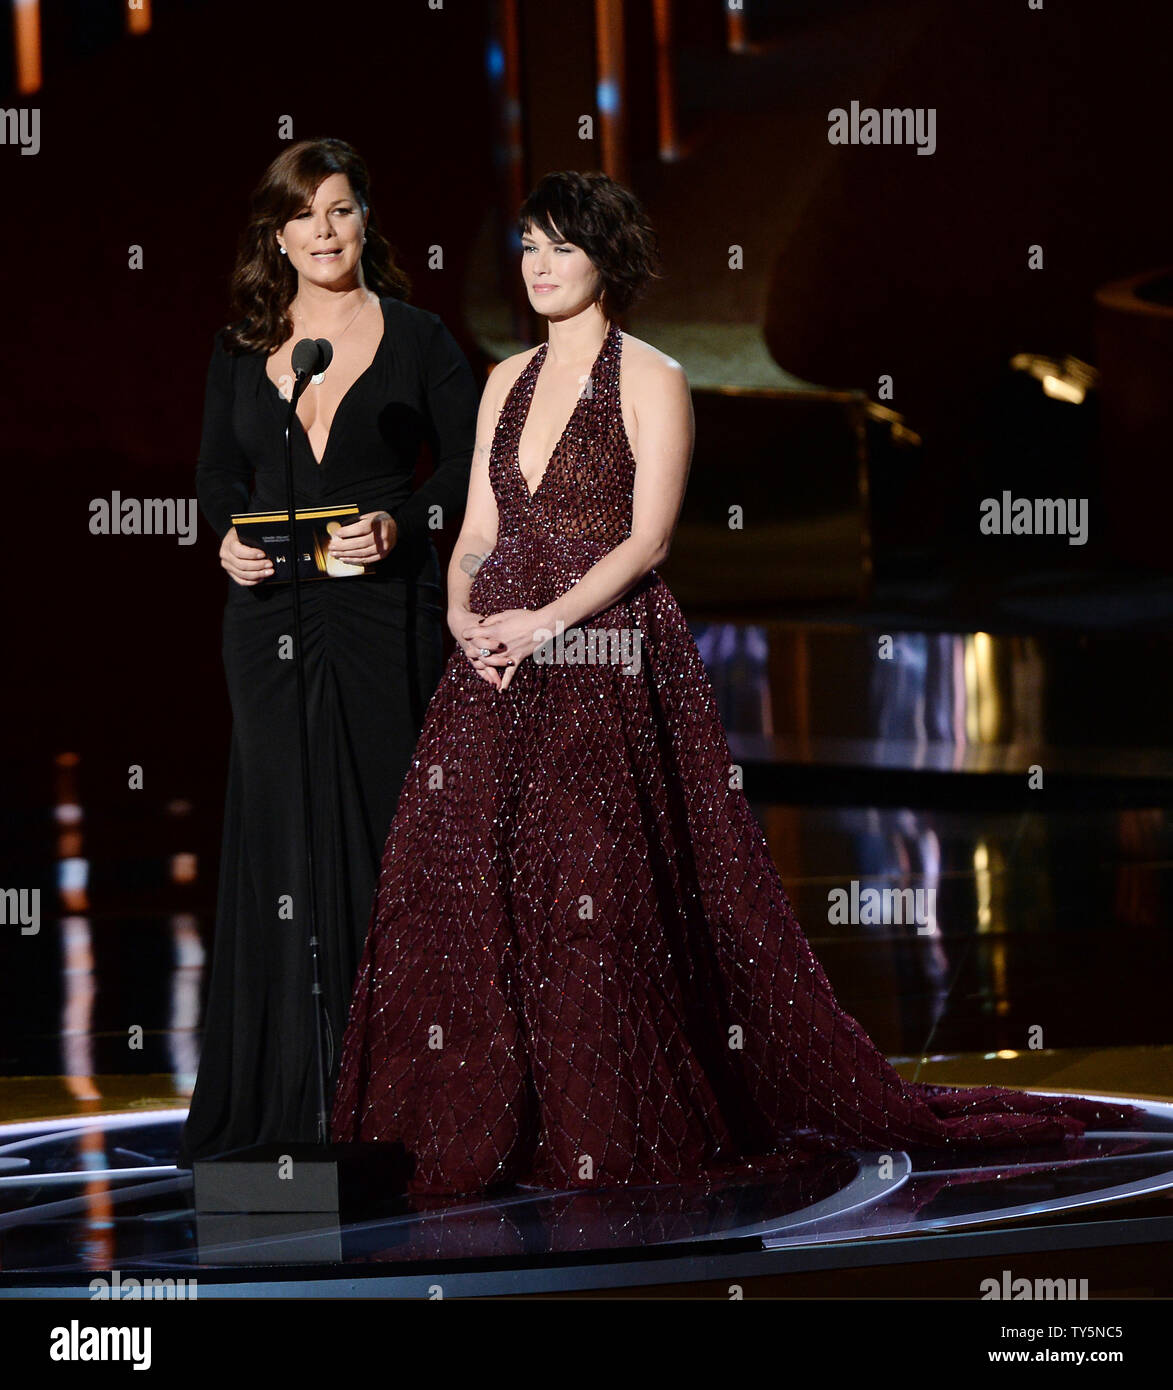 Actresses Marica Gay Harden (L) and Lena Heady appear onstage during the 67th Primetime Emmy Awards in the Microsoft Theater in Los Angeles on September 20, 2015.   Photo by Ken Matsui/UPI. - Stock Image